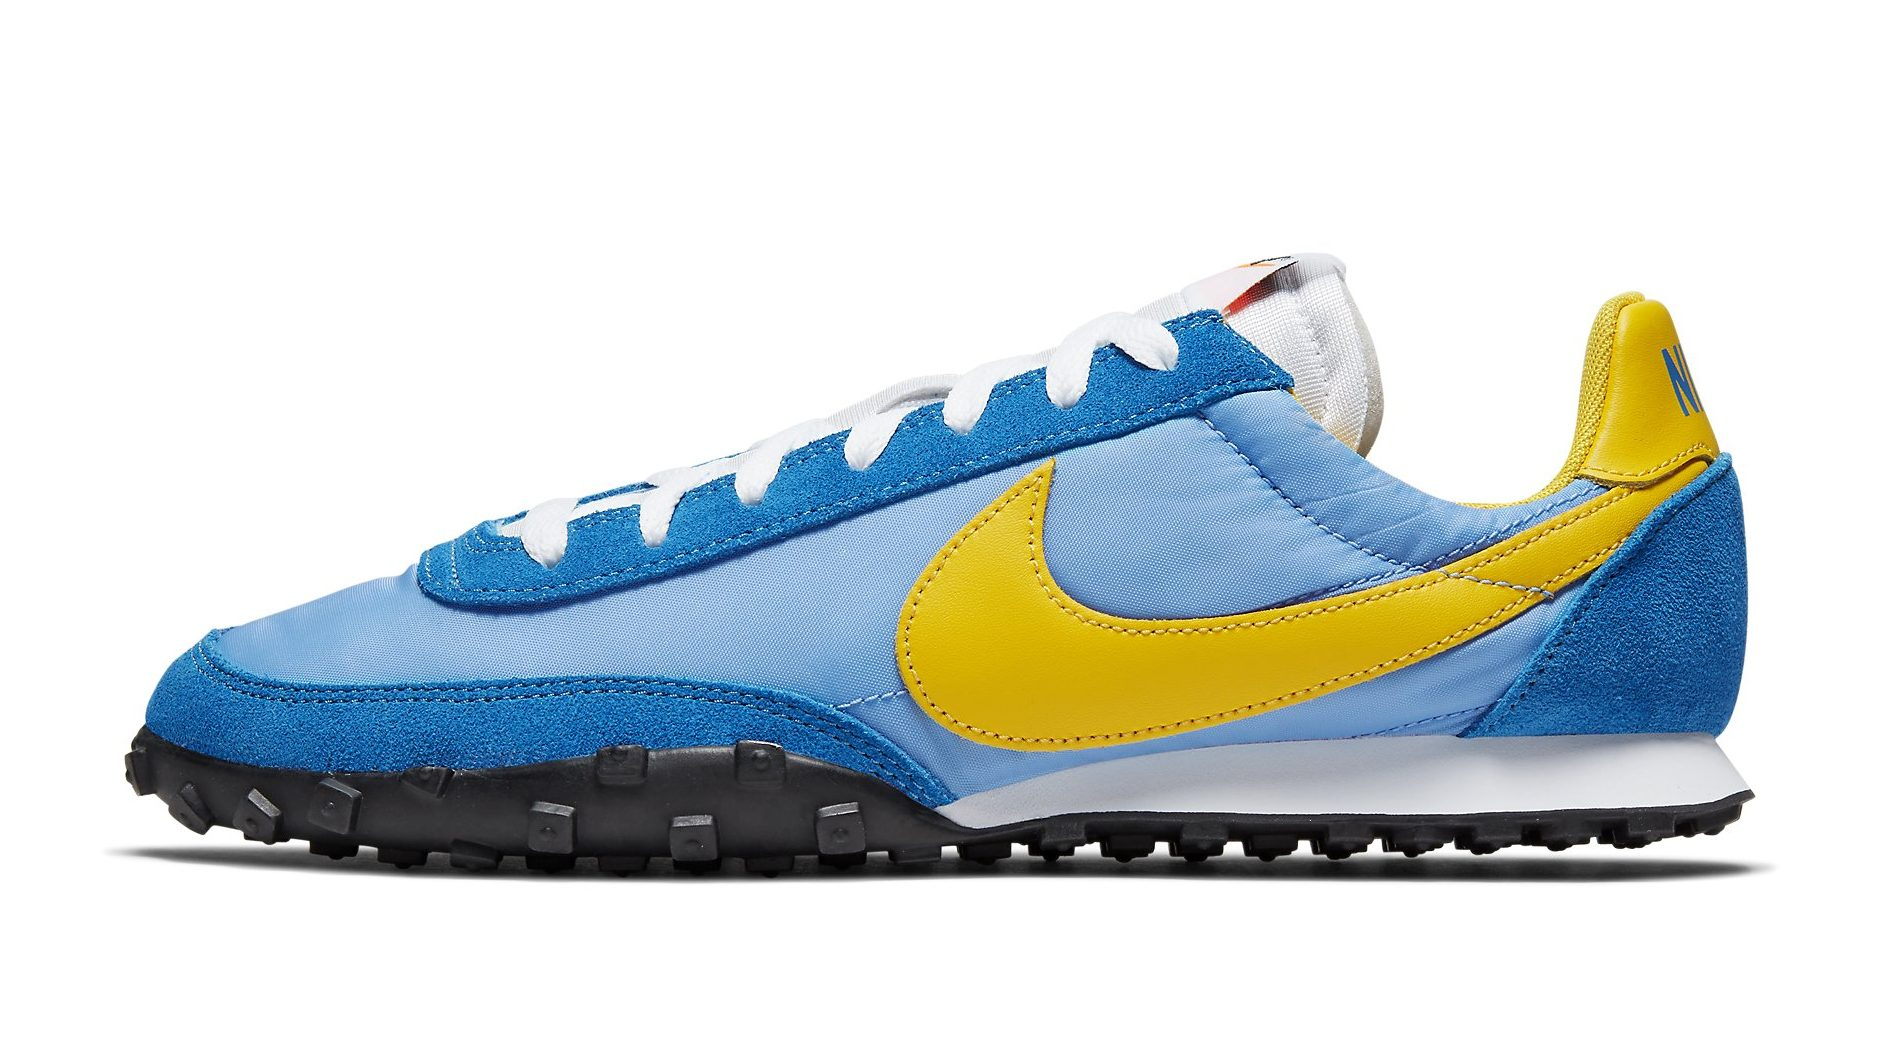 cordura claridad saltar  Nike Waffle Racer 'University Blue' Release Info: How to Purchase It –  Footwear News